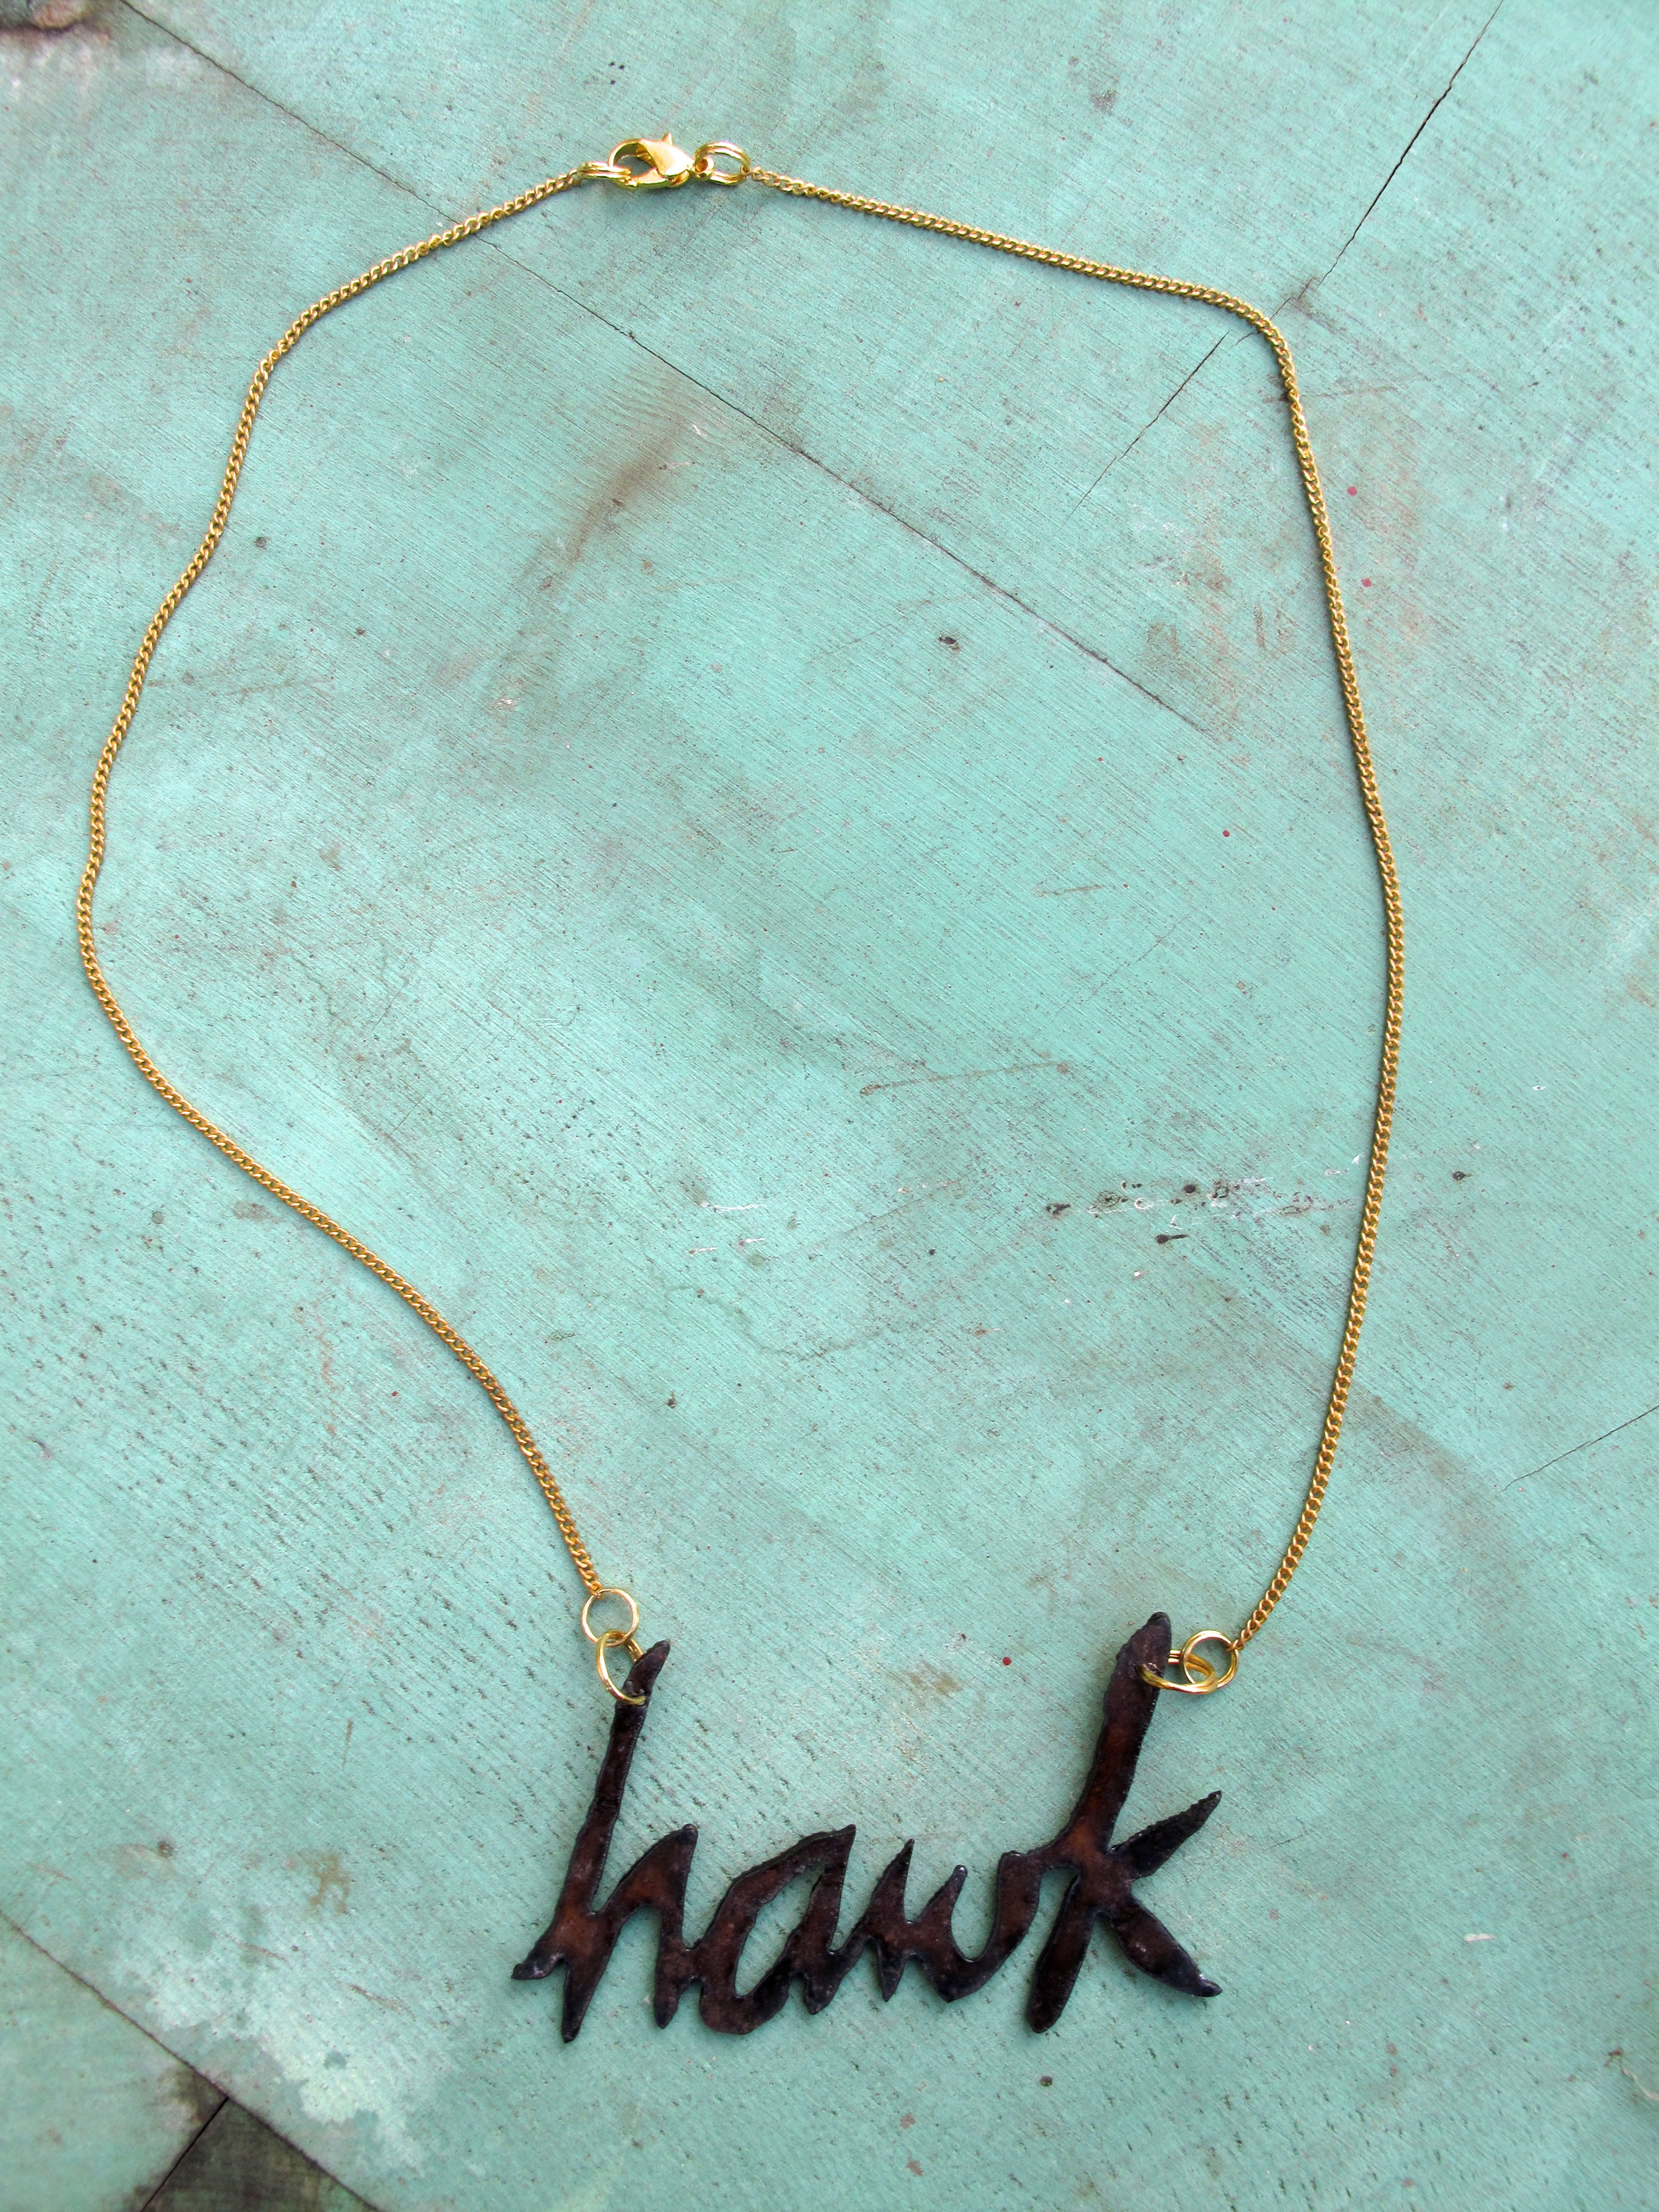 Hawk necklace. Plasma cut steel. *contact us if you want customized bling